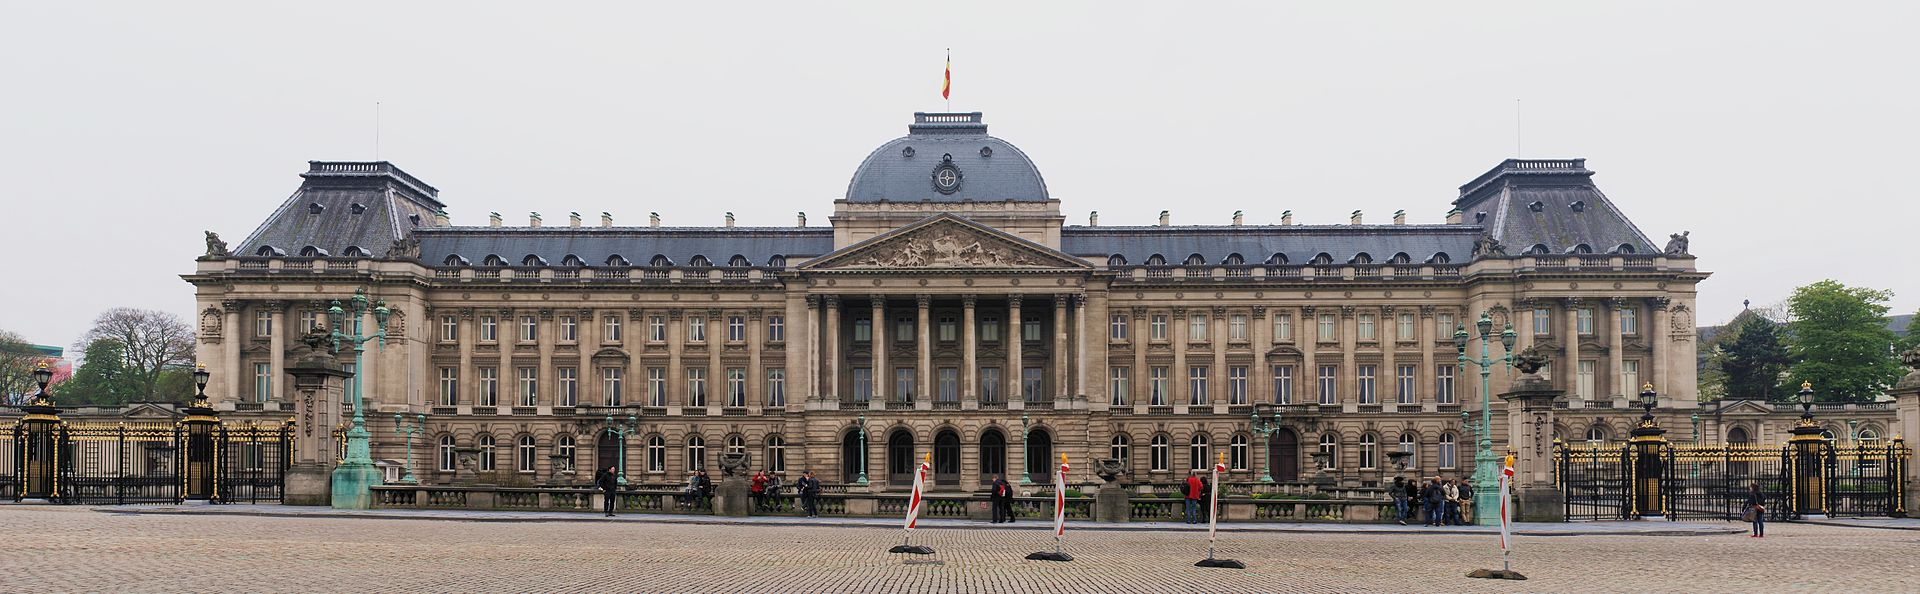 The Royal Palace of Brussels|© Alvesgaspar/Wiki Commons